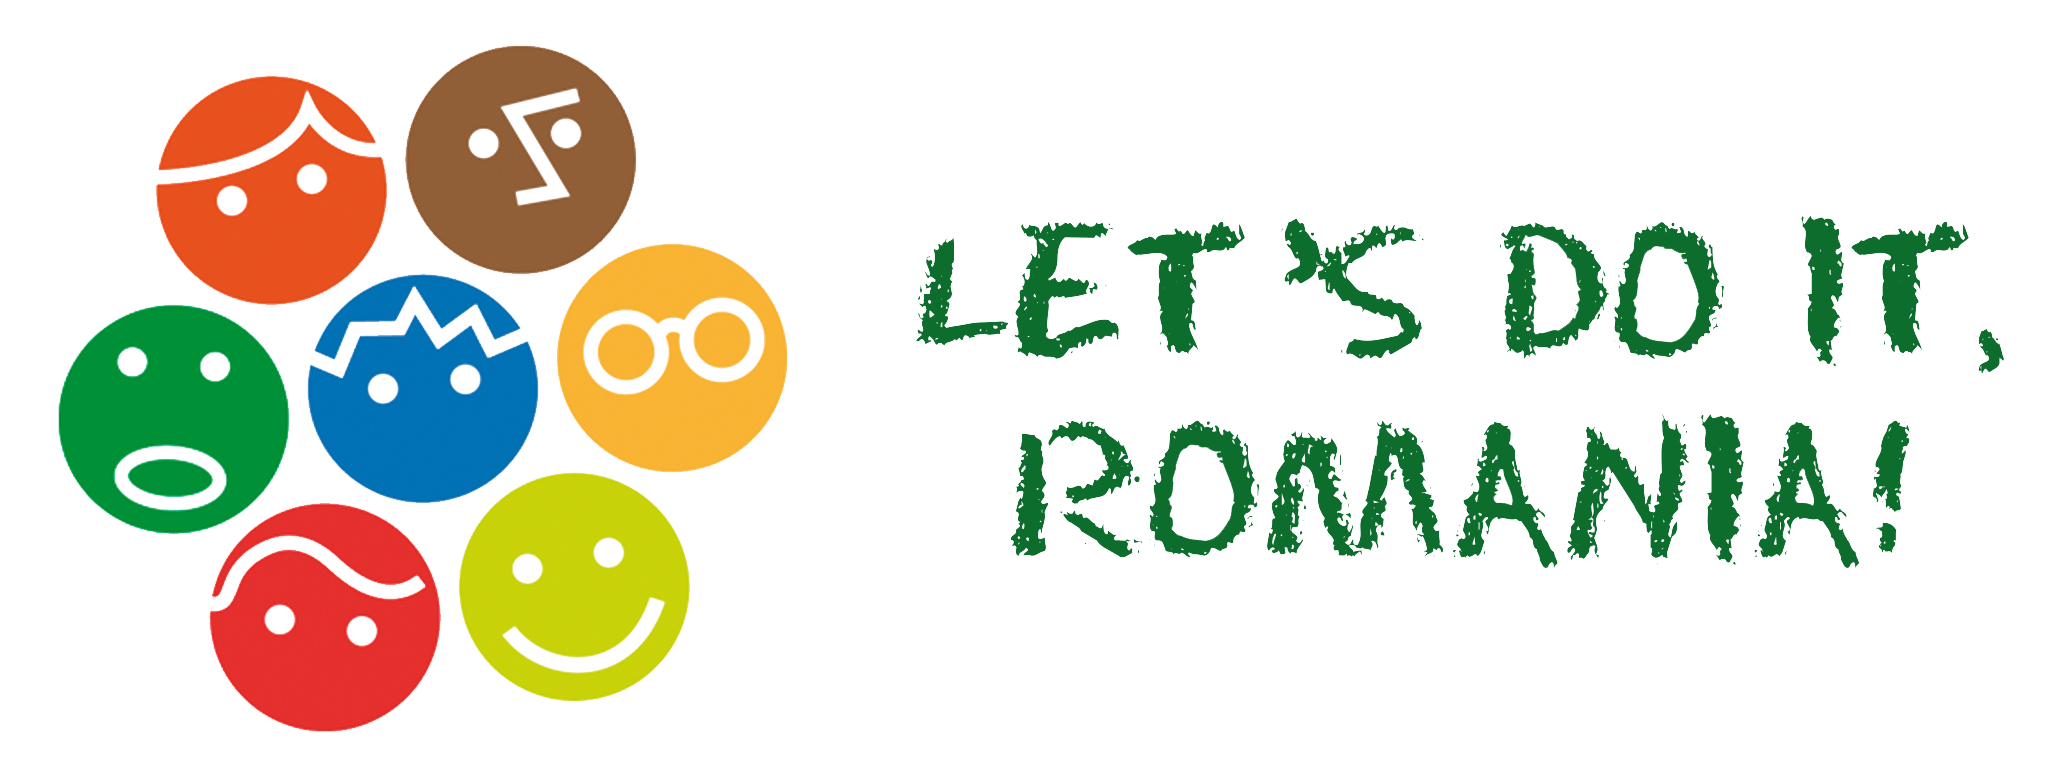 Asociatia Let's Do It, Romania! logo